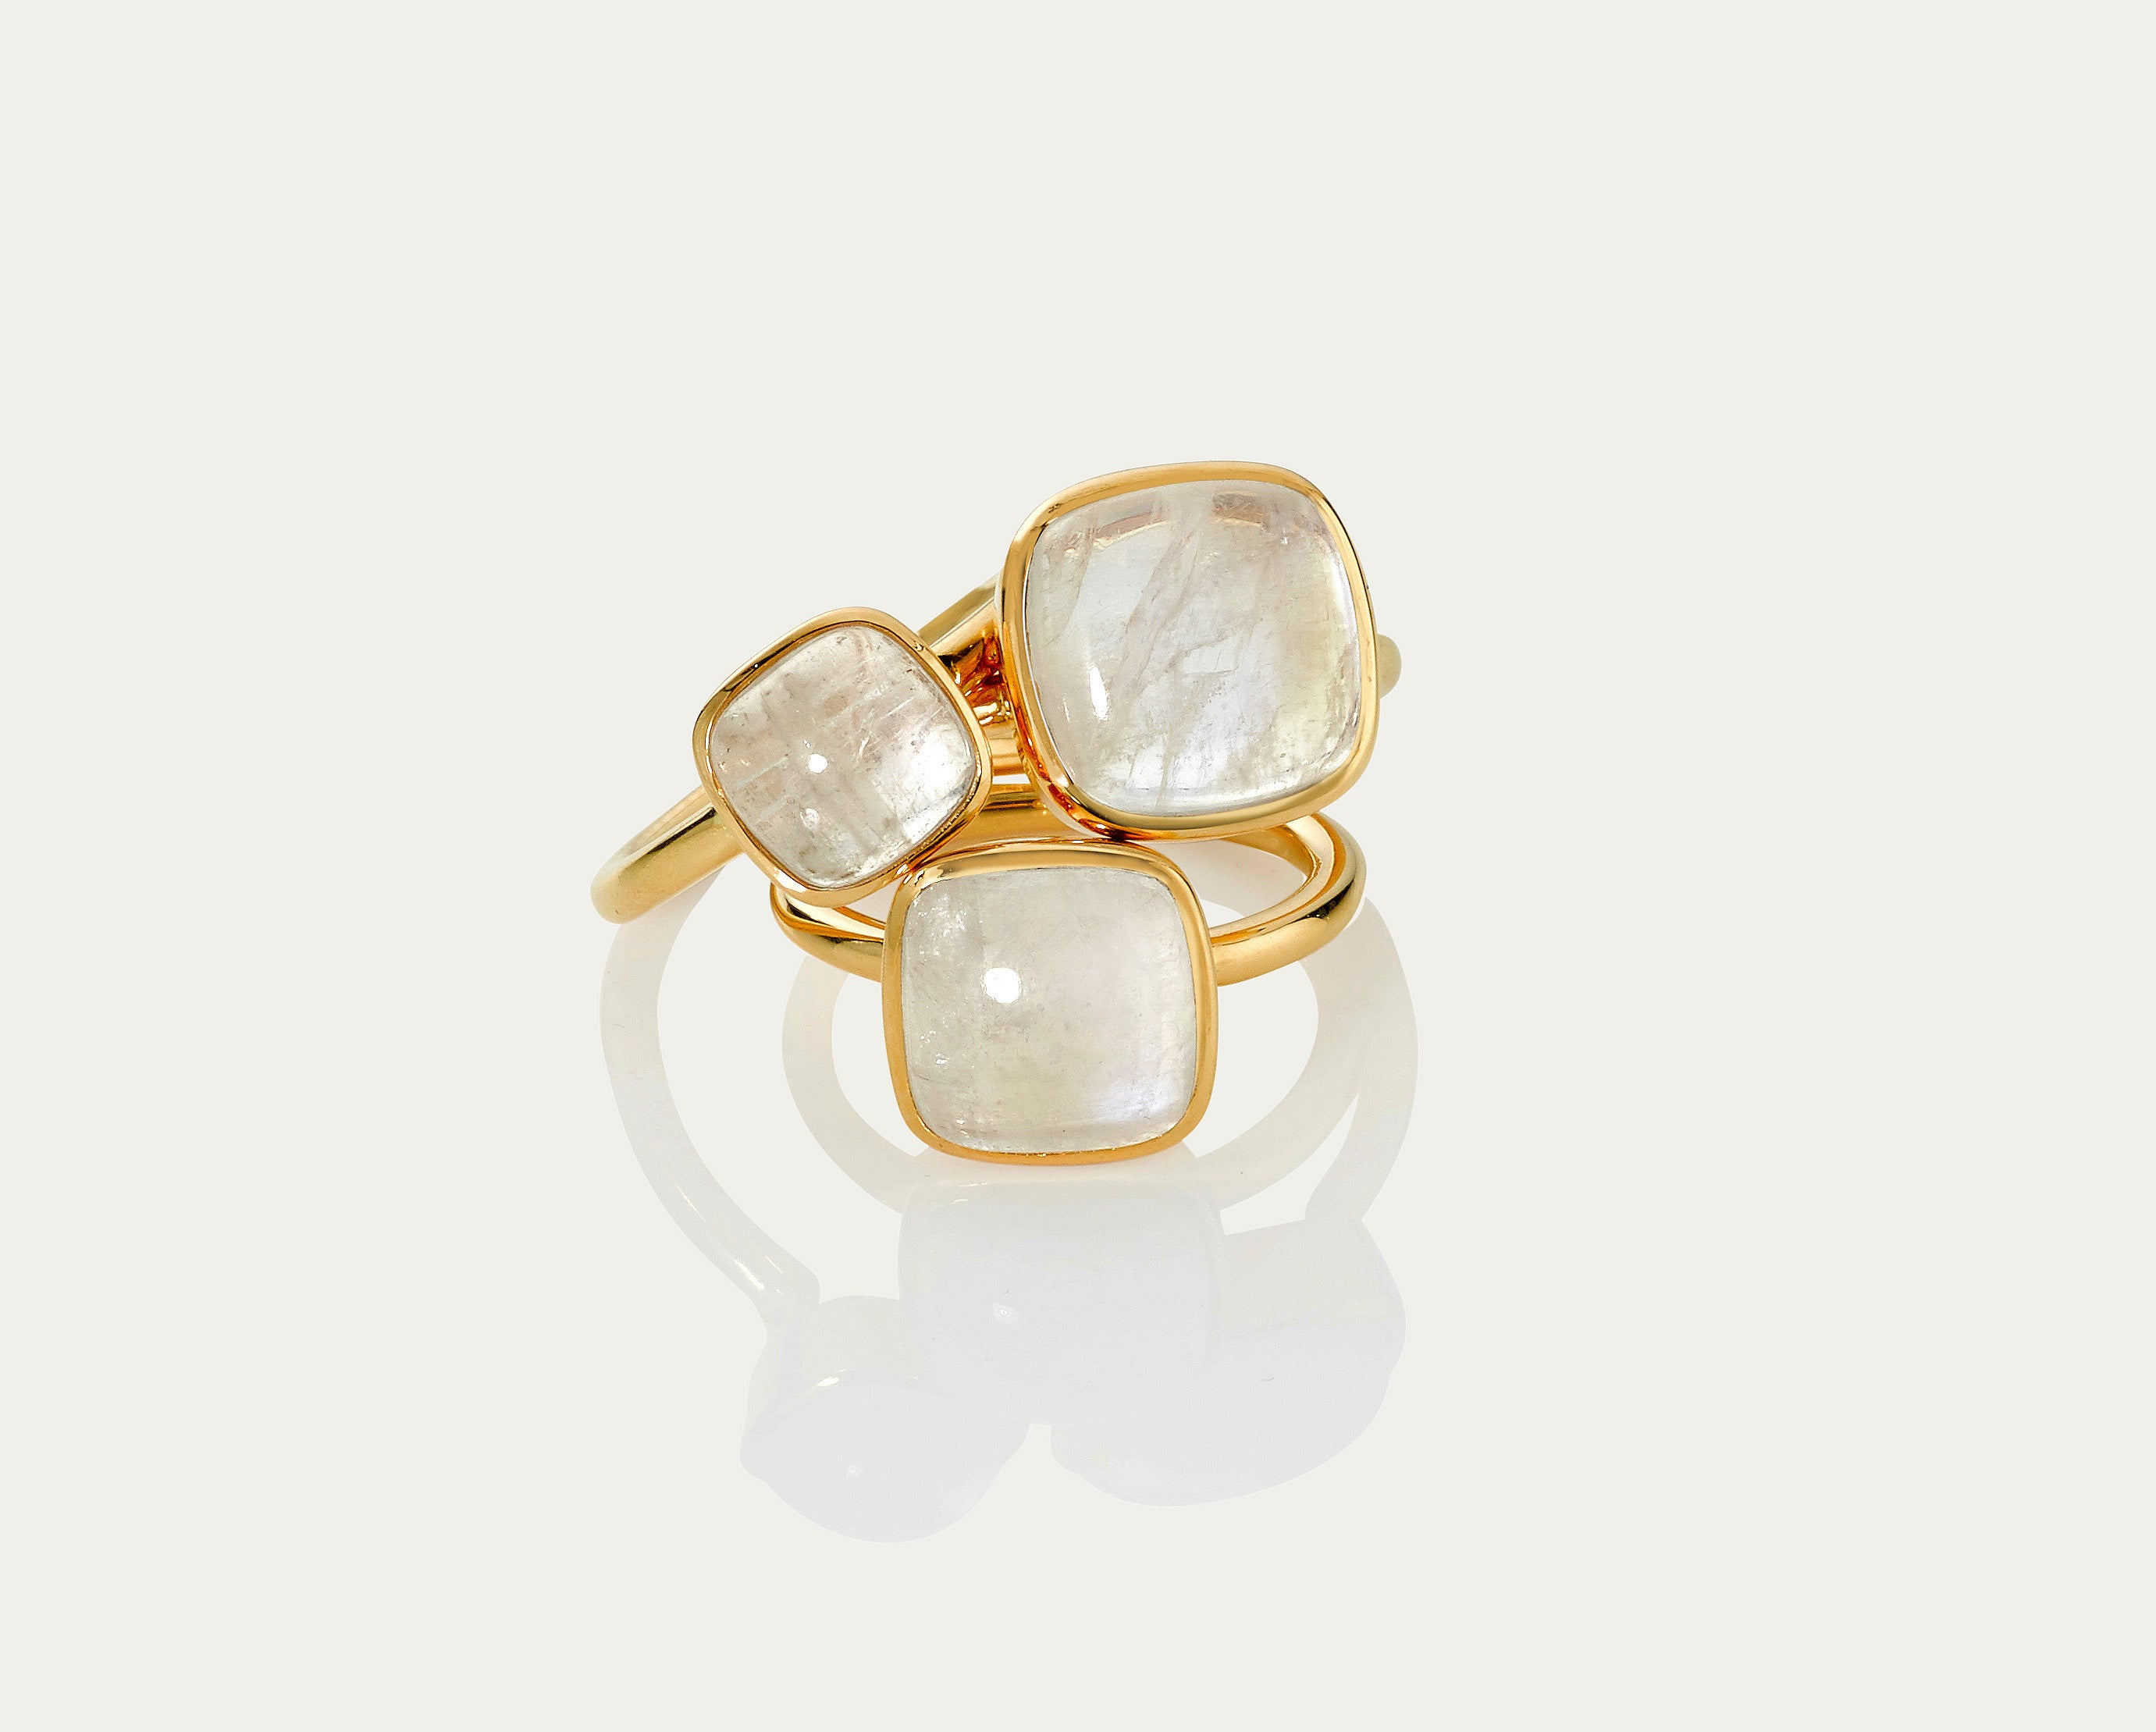 Bobo Ring Cabochon - Moonstone 10mm